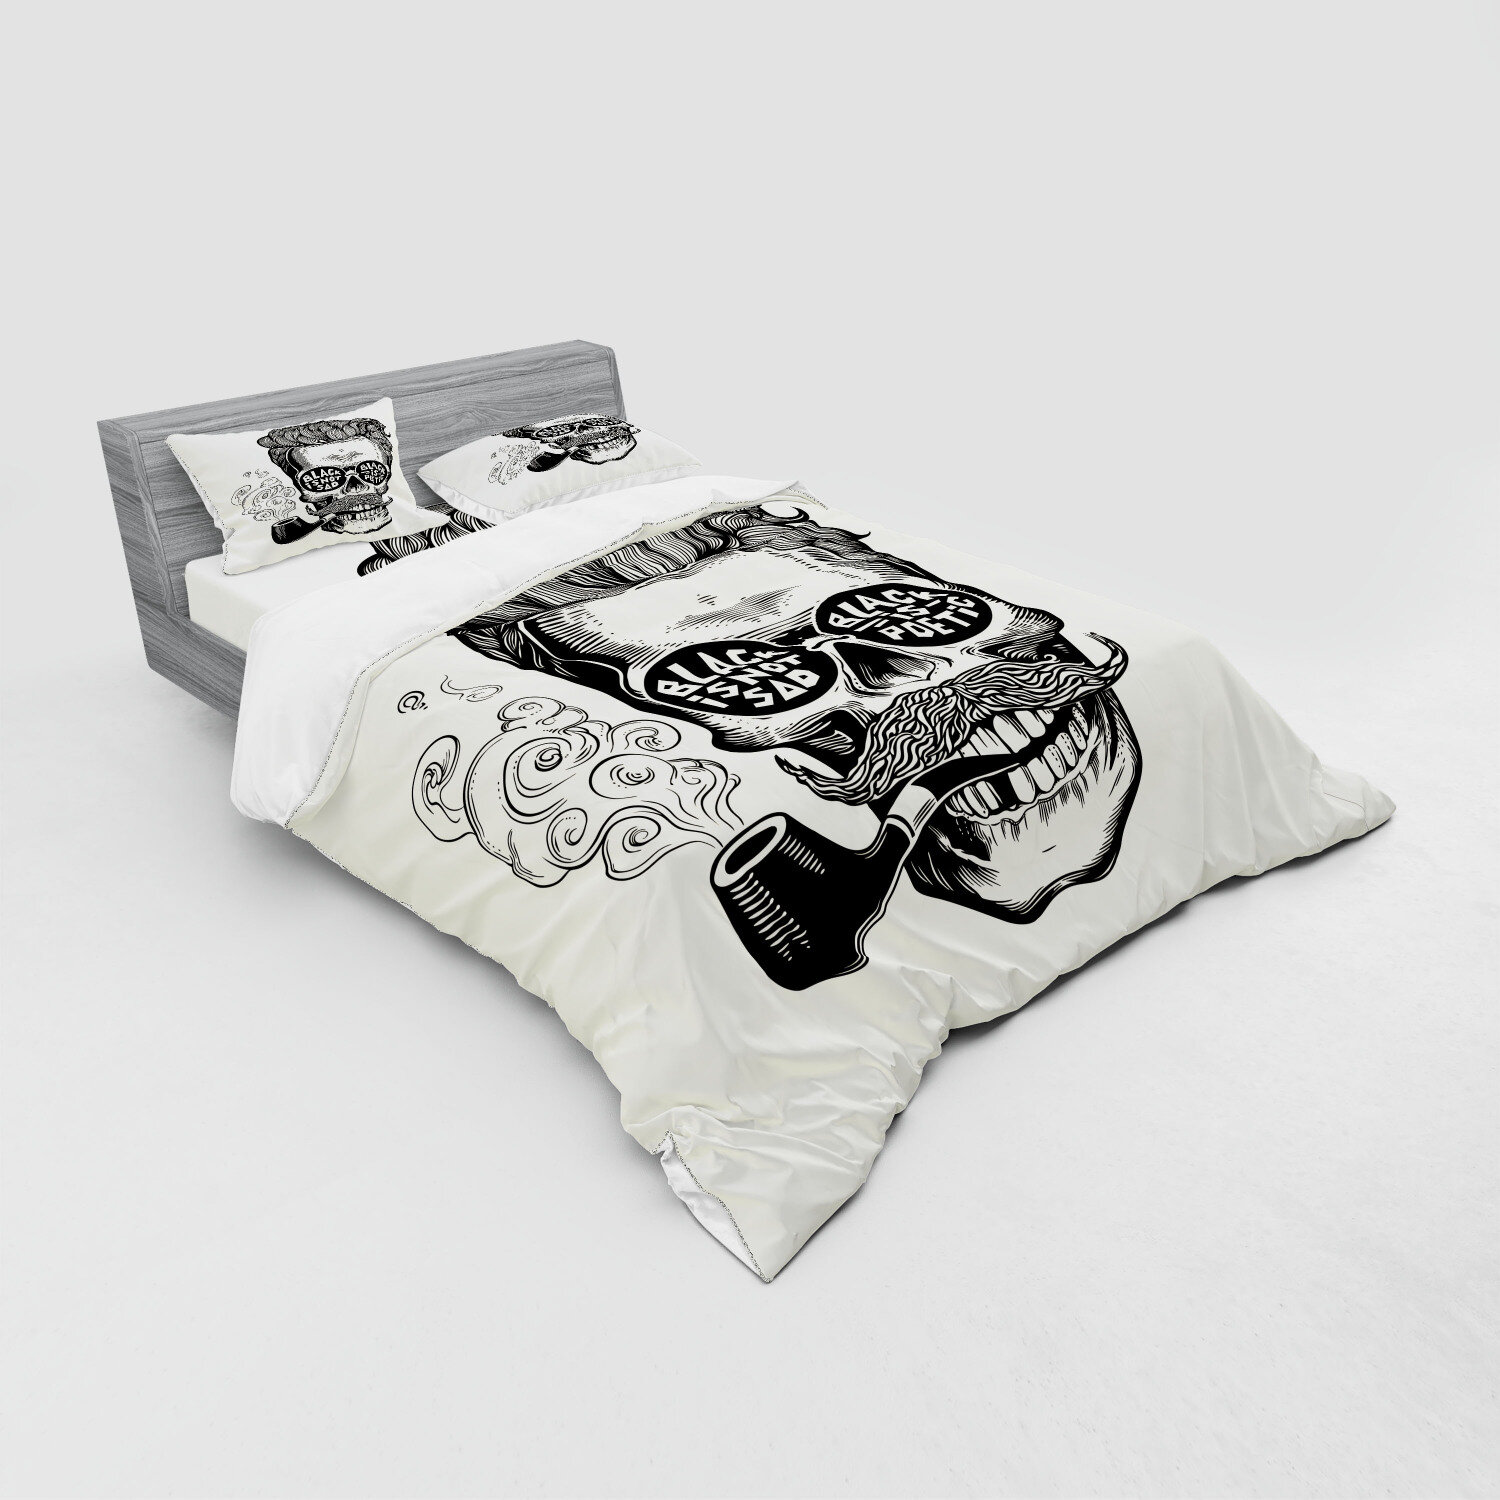 East Urban Home Ambesonne Indie Bedding Set Hipster Gentleman Skull With Moustache Pipe And Eyeglasses With Inscription Vintage 4 Piece Duvet Cover Set With Shams And Fitted Sheet Queen Size Black Cream